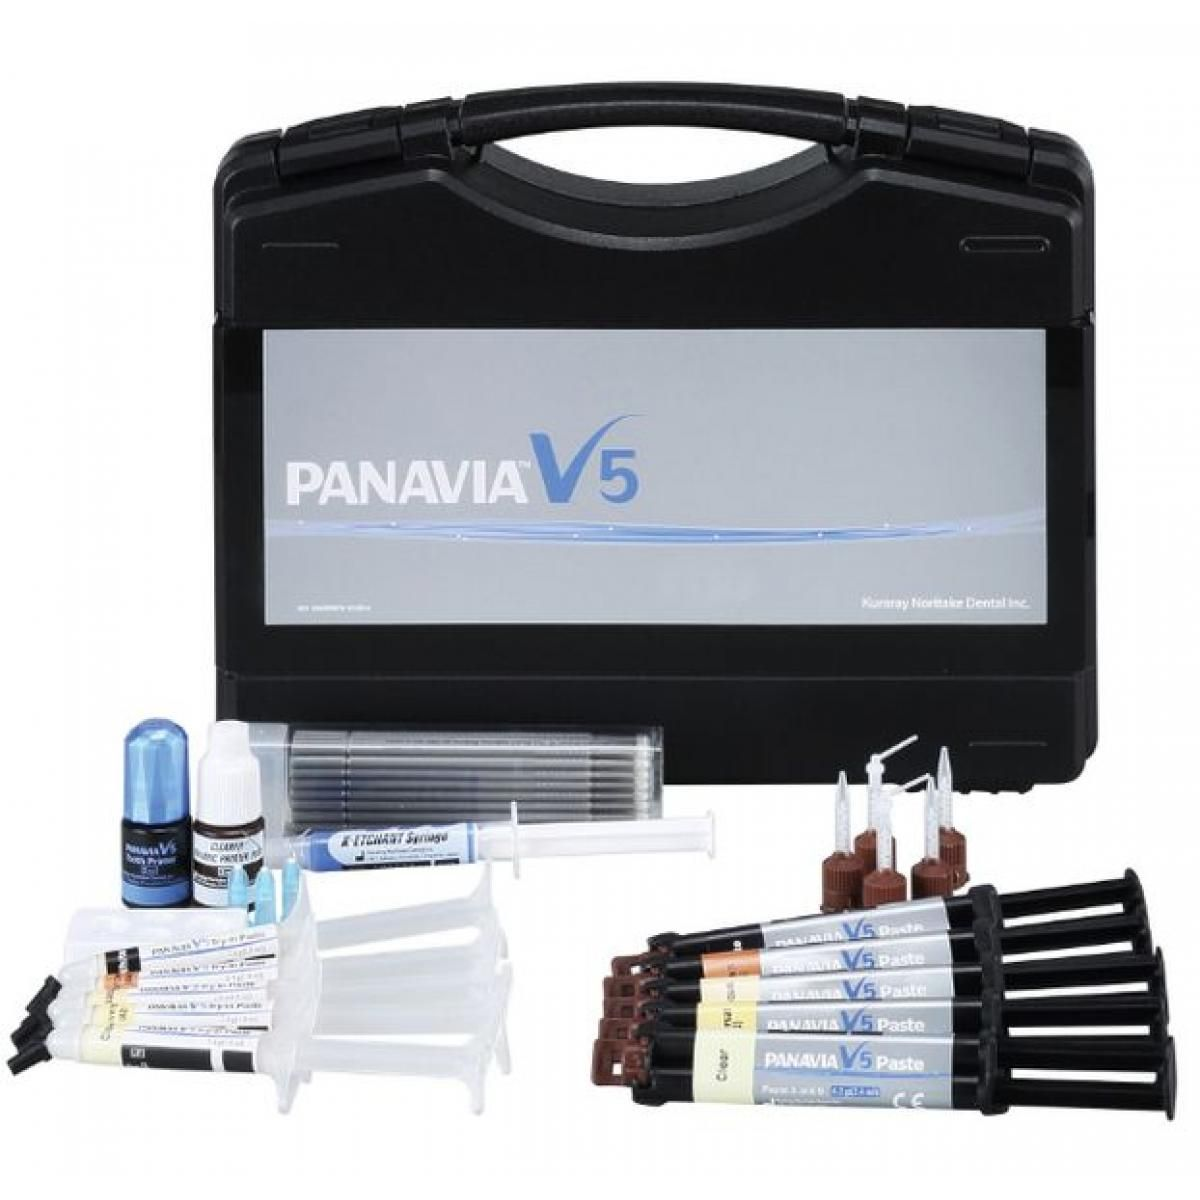 PANAVIA V5 KIT PROFESIONAL KURARAY -